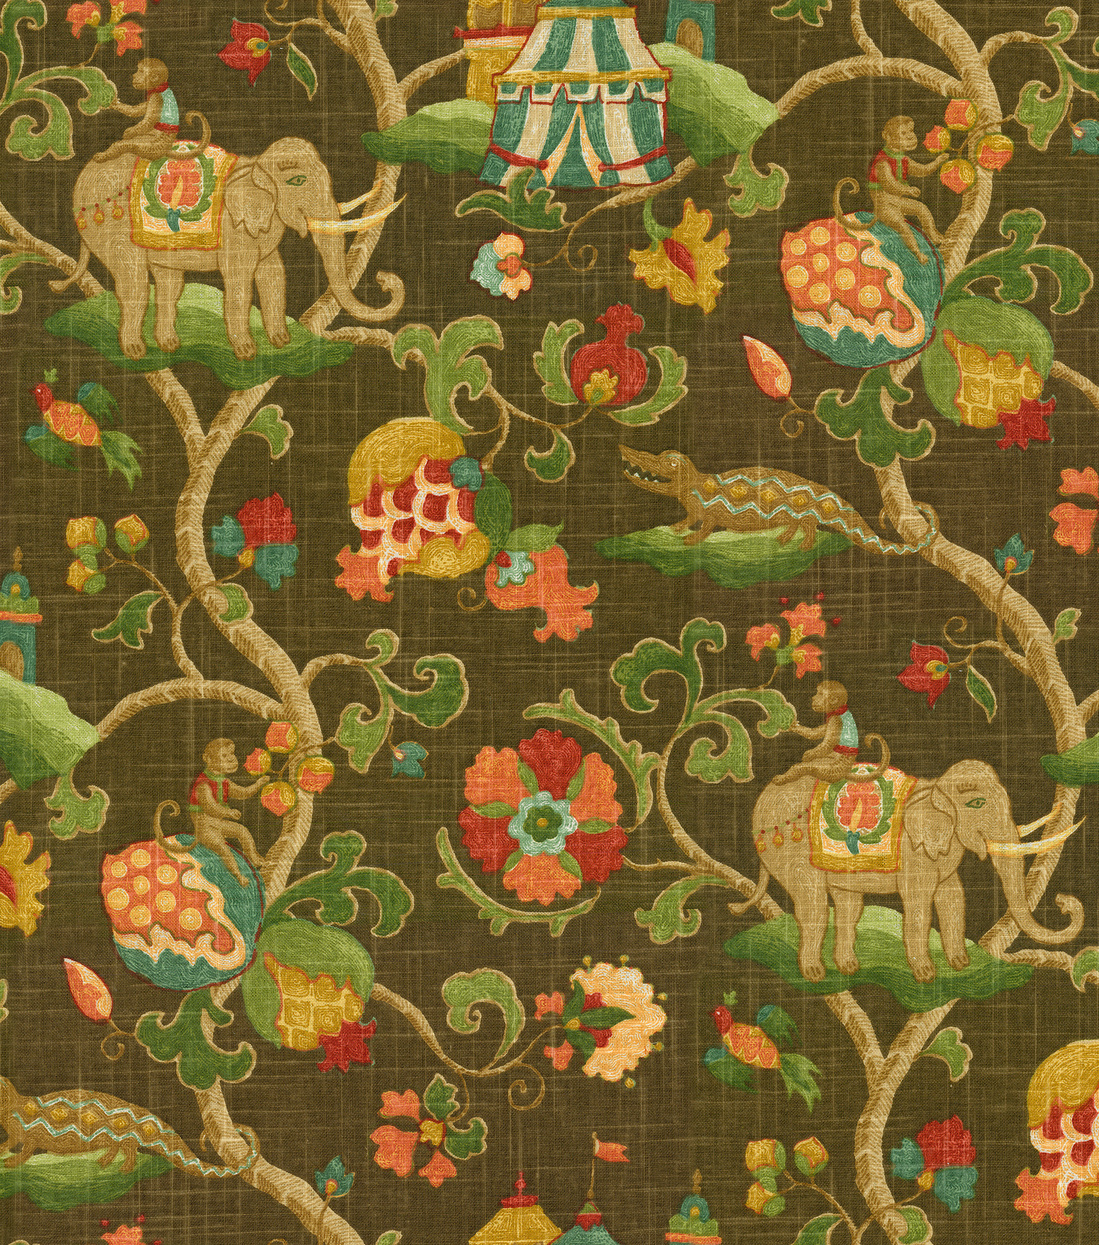 Home Decor 8\u0022x8\u0022 Fabric Swatch-Pkaufmann Uzbek Tapestry